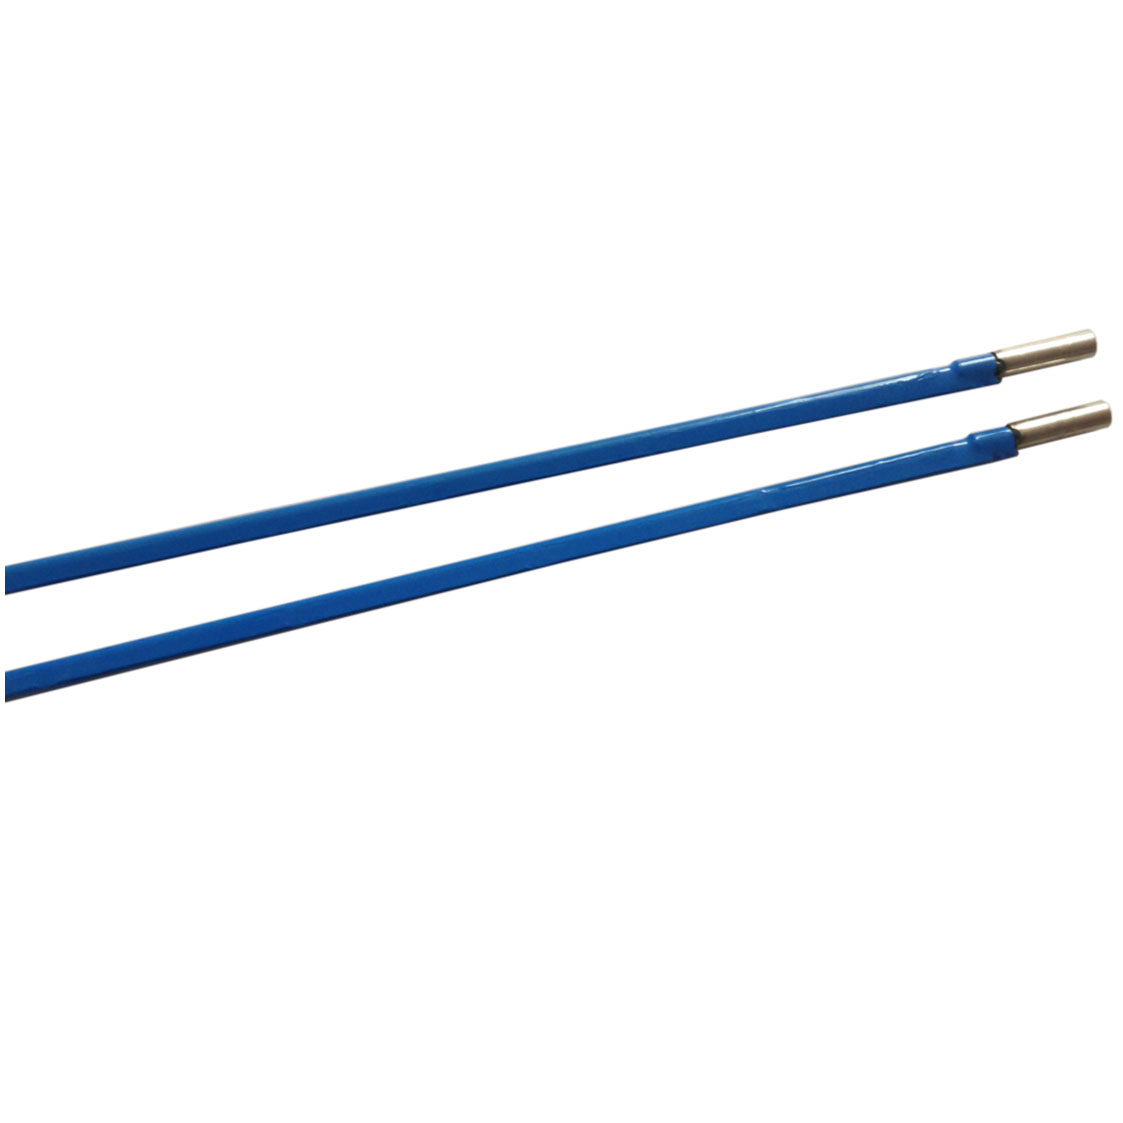 2pcs Two Way Rod Type Guitar Truss Rod Steel 9 X 440mm Blue